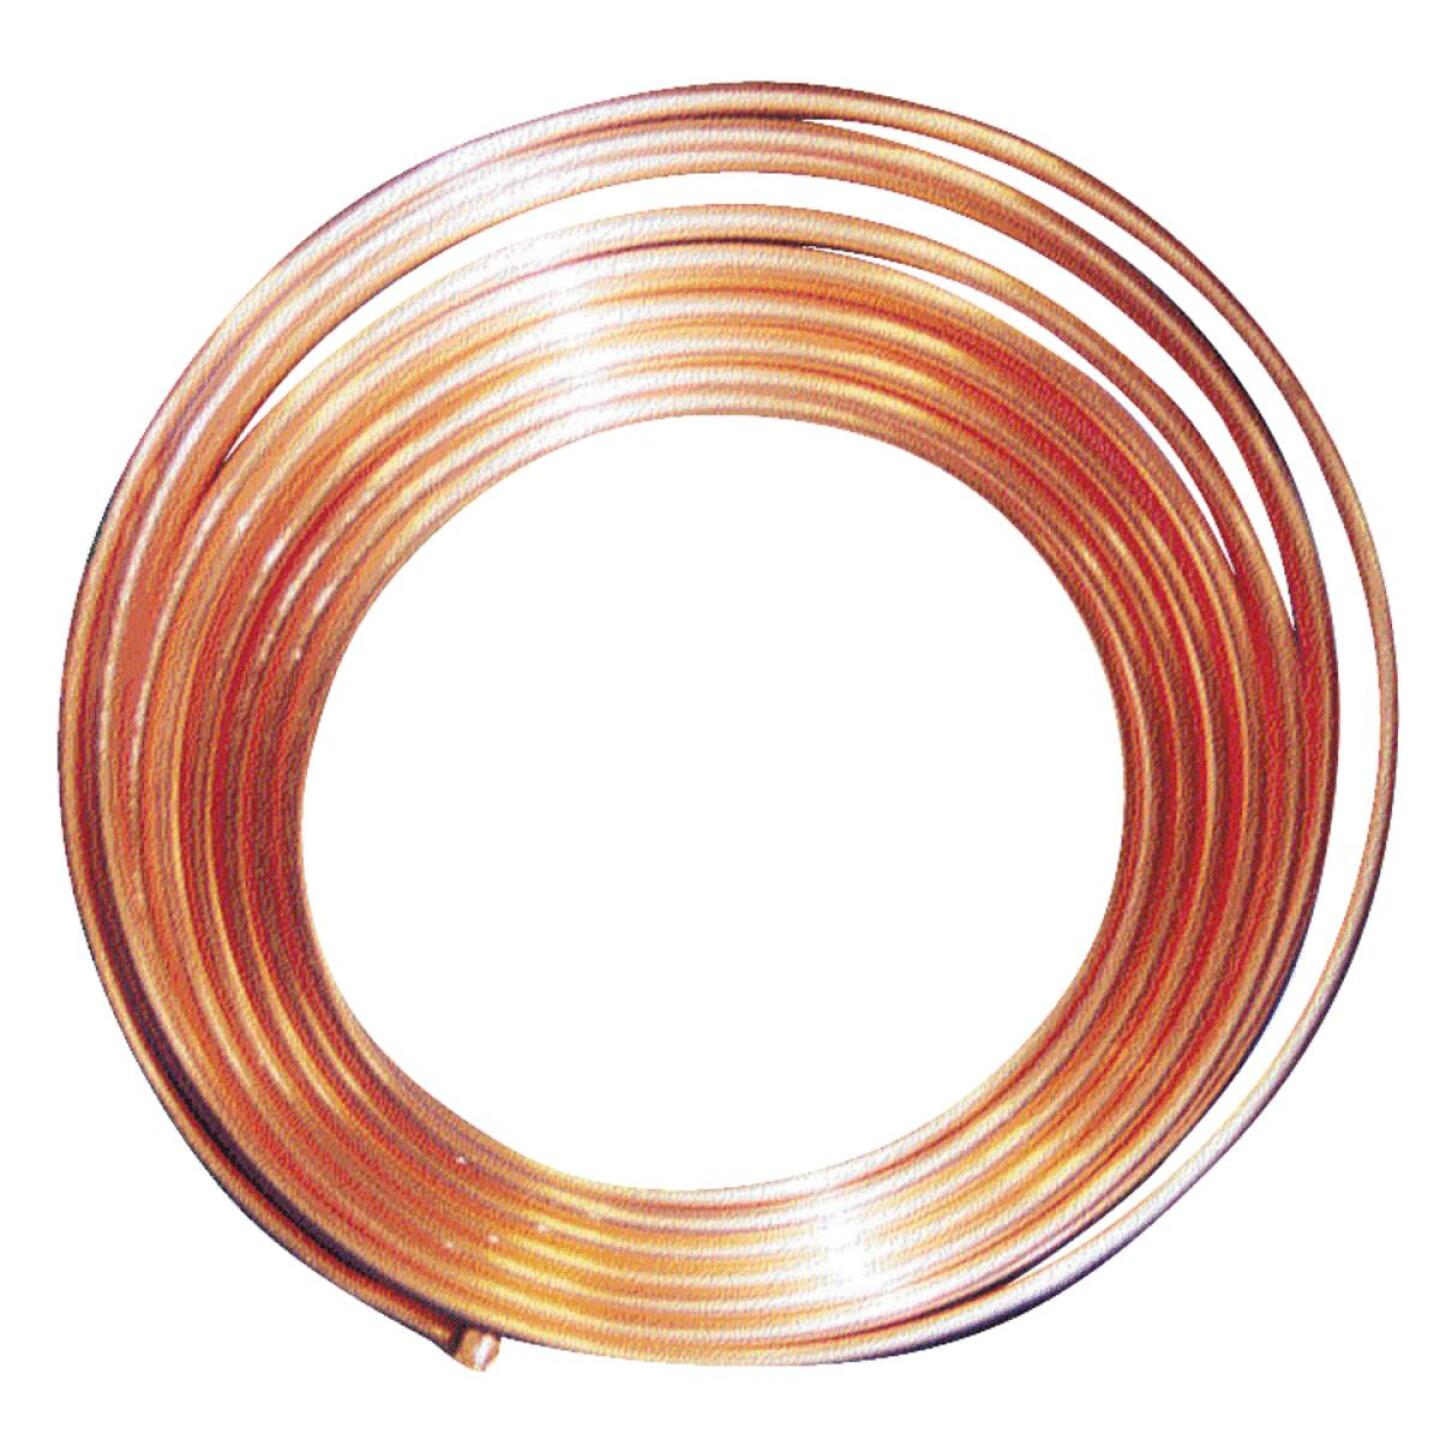 Mueller Streamline 1/2 In. ID x 10 Ft. Soft Coil Copper Tubing Image 1